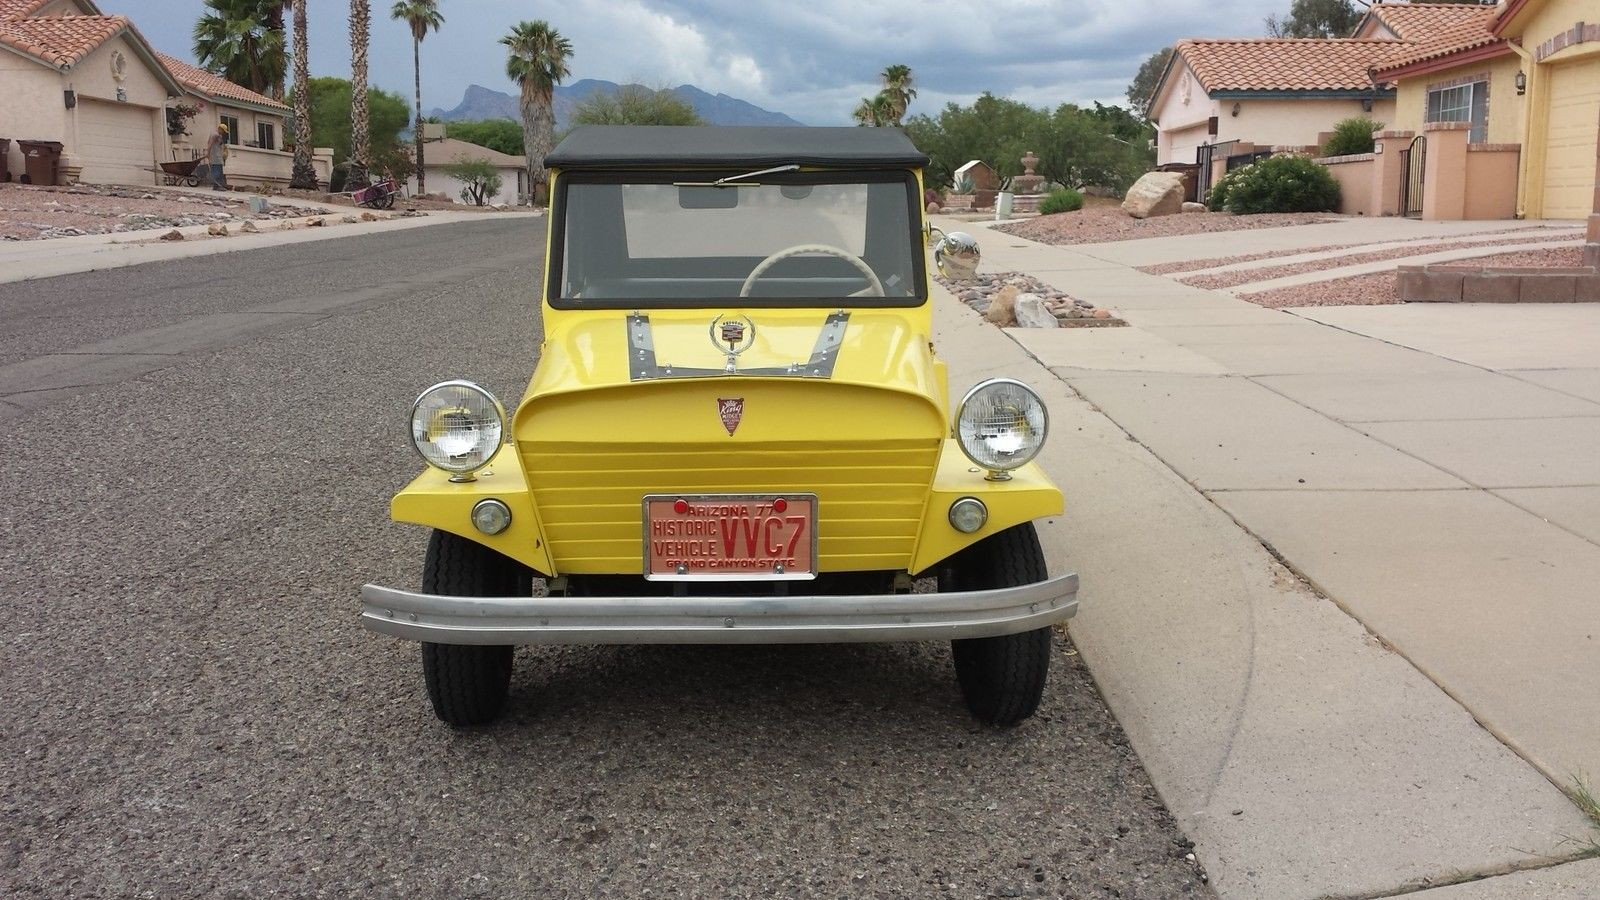 King midget auto for sale can